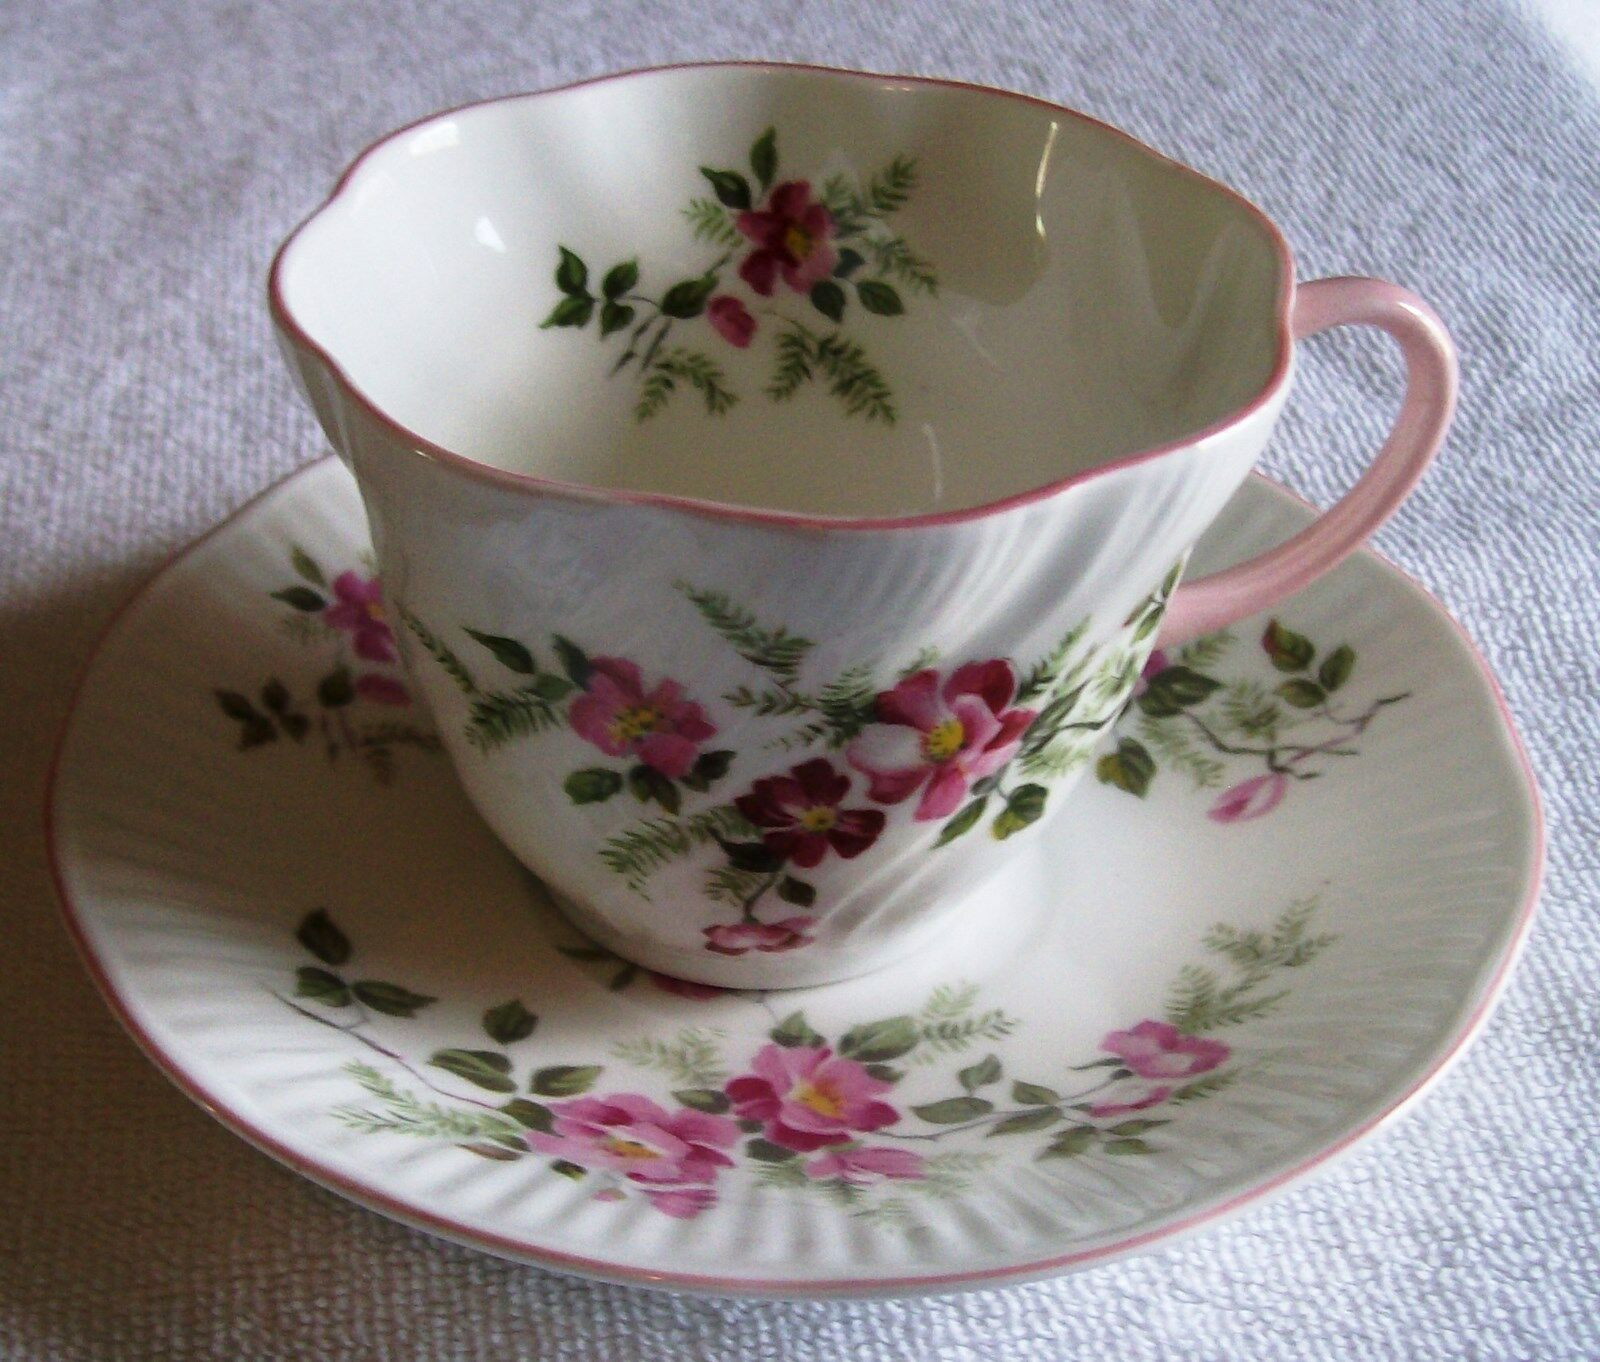 vintage queens staffordshire fine bone china from england cup and saucer picclick. Black Bedroom Furniture Sets. Home Design Ideas